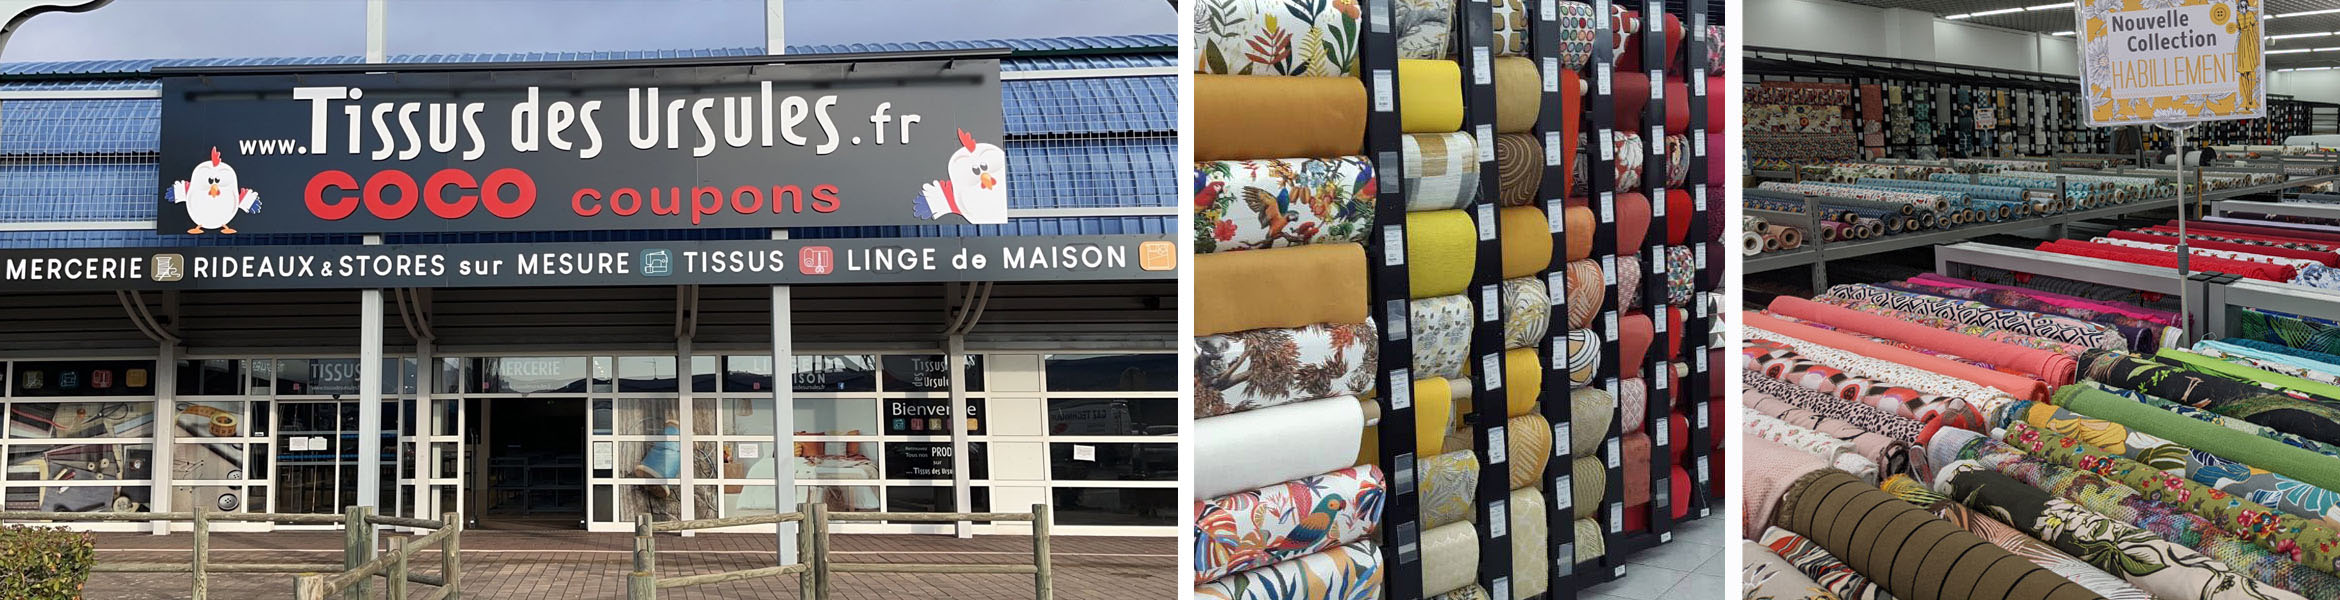 100 Incroyable Suggestions Magasin Tissu Clermont Ferrand